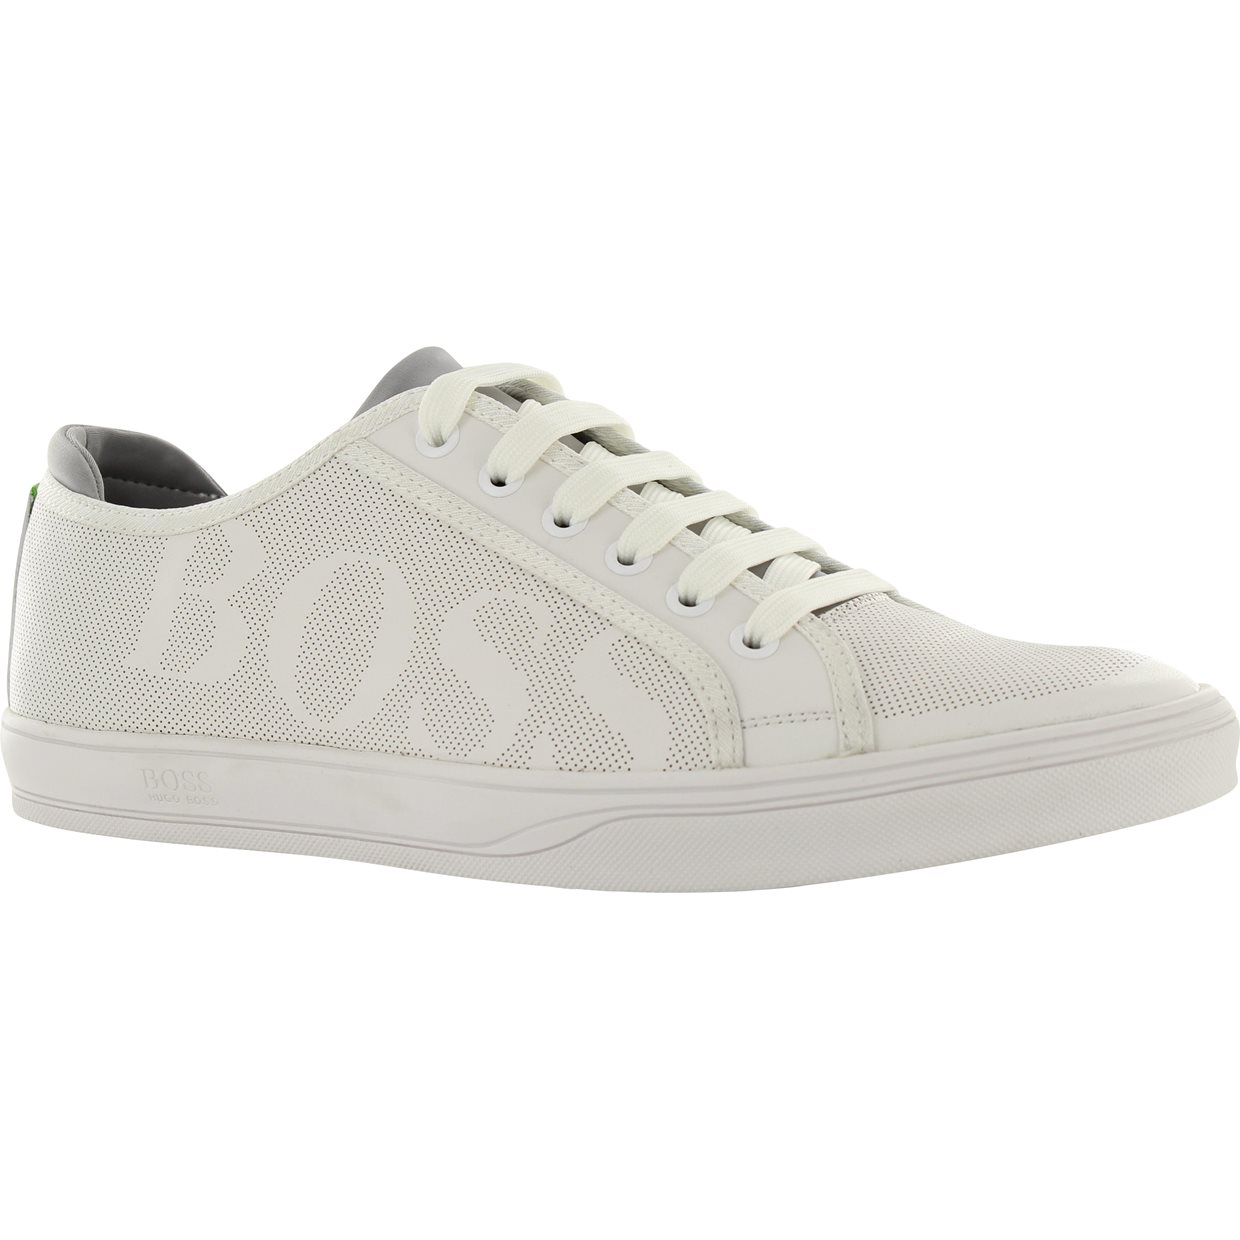 Hugo Boss Sneakers Hugo Boss Attitude Tennis Inspired Leather Sneakers Shoes